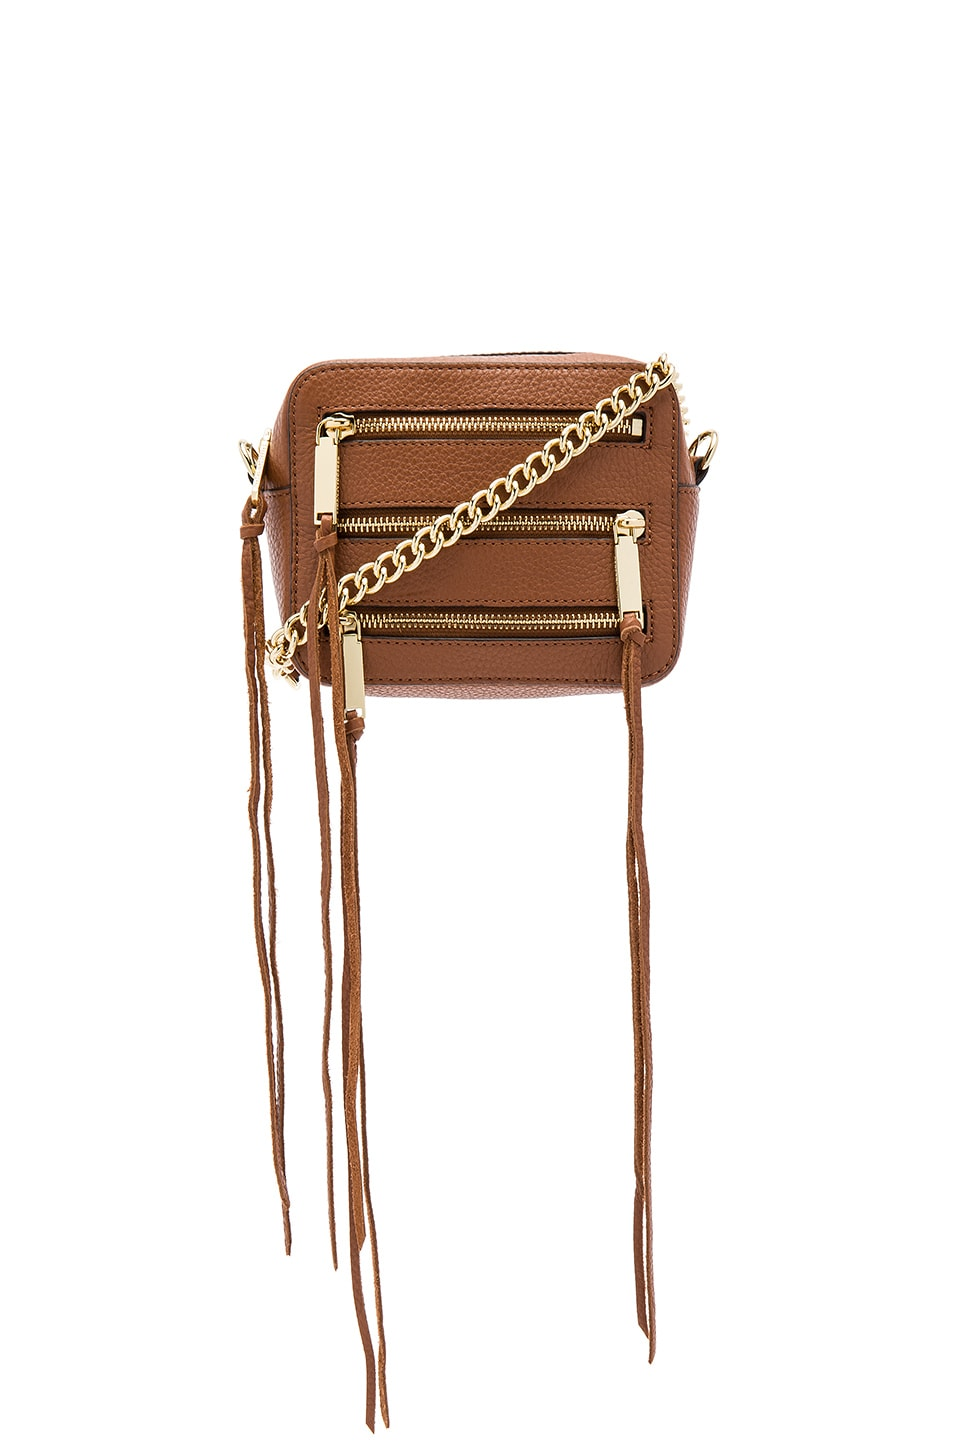 Rebecca Minkoff 4 Zip Moto Camera Bag in Almond